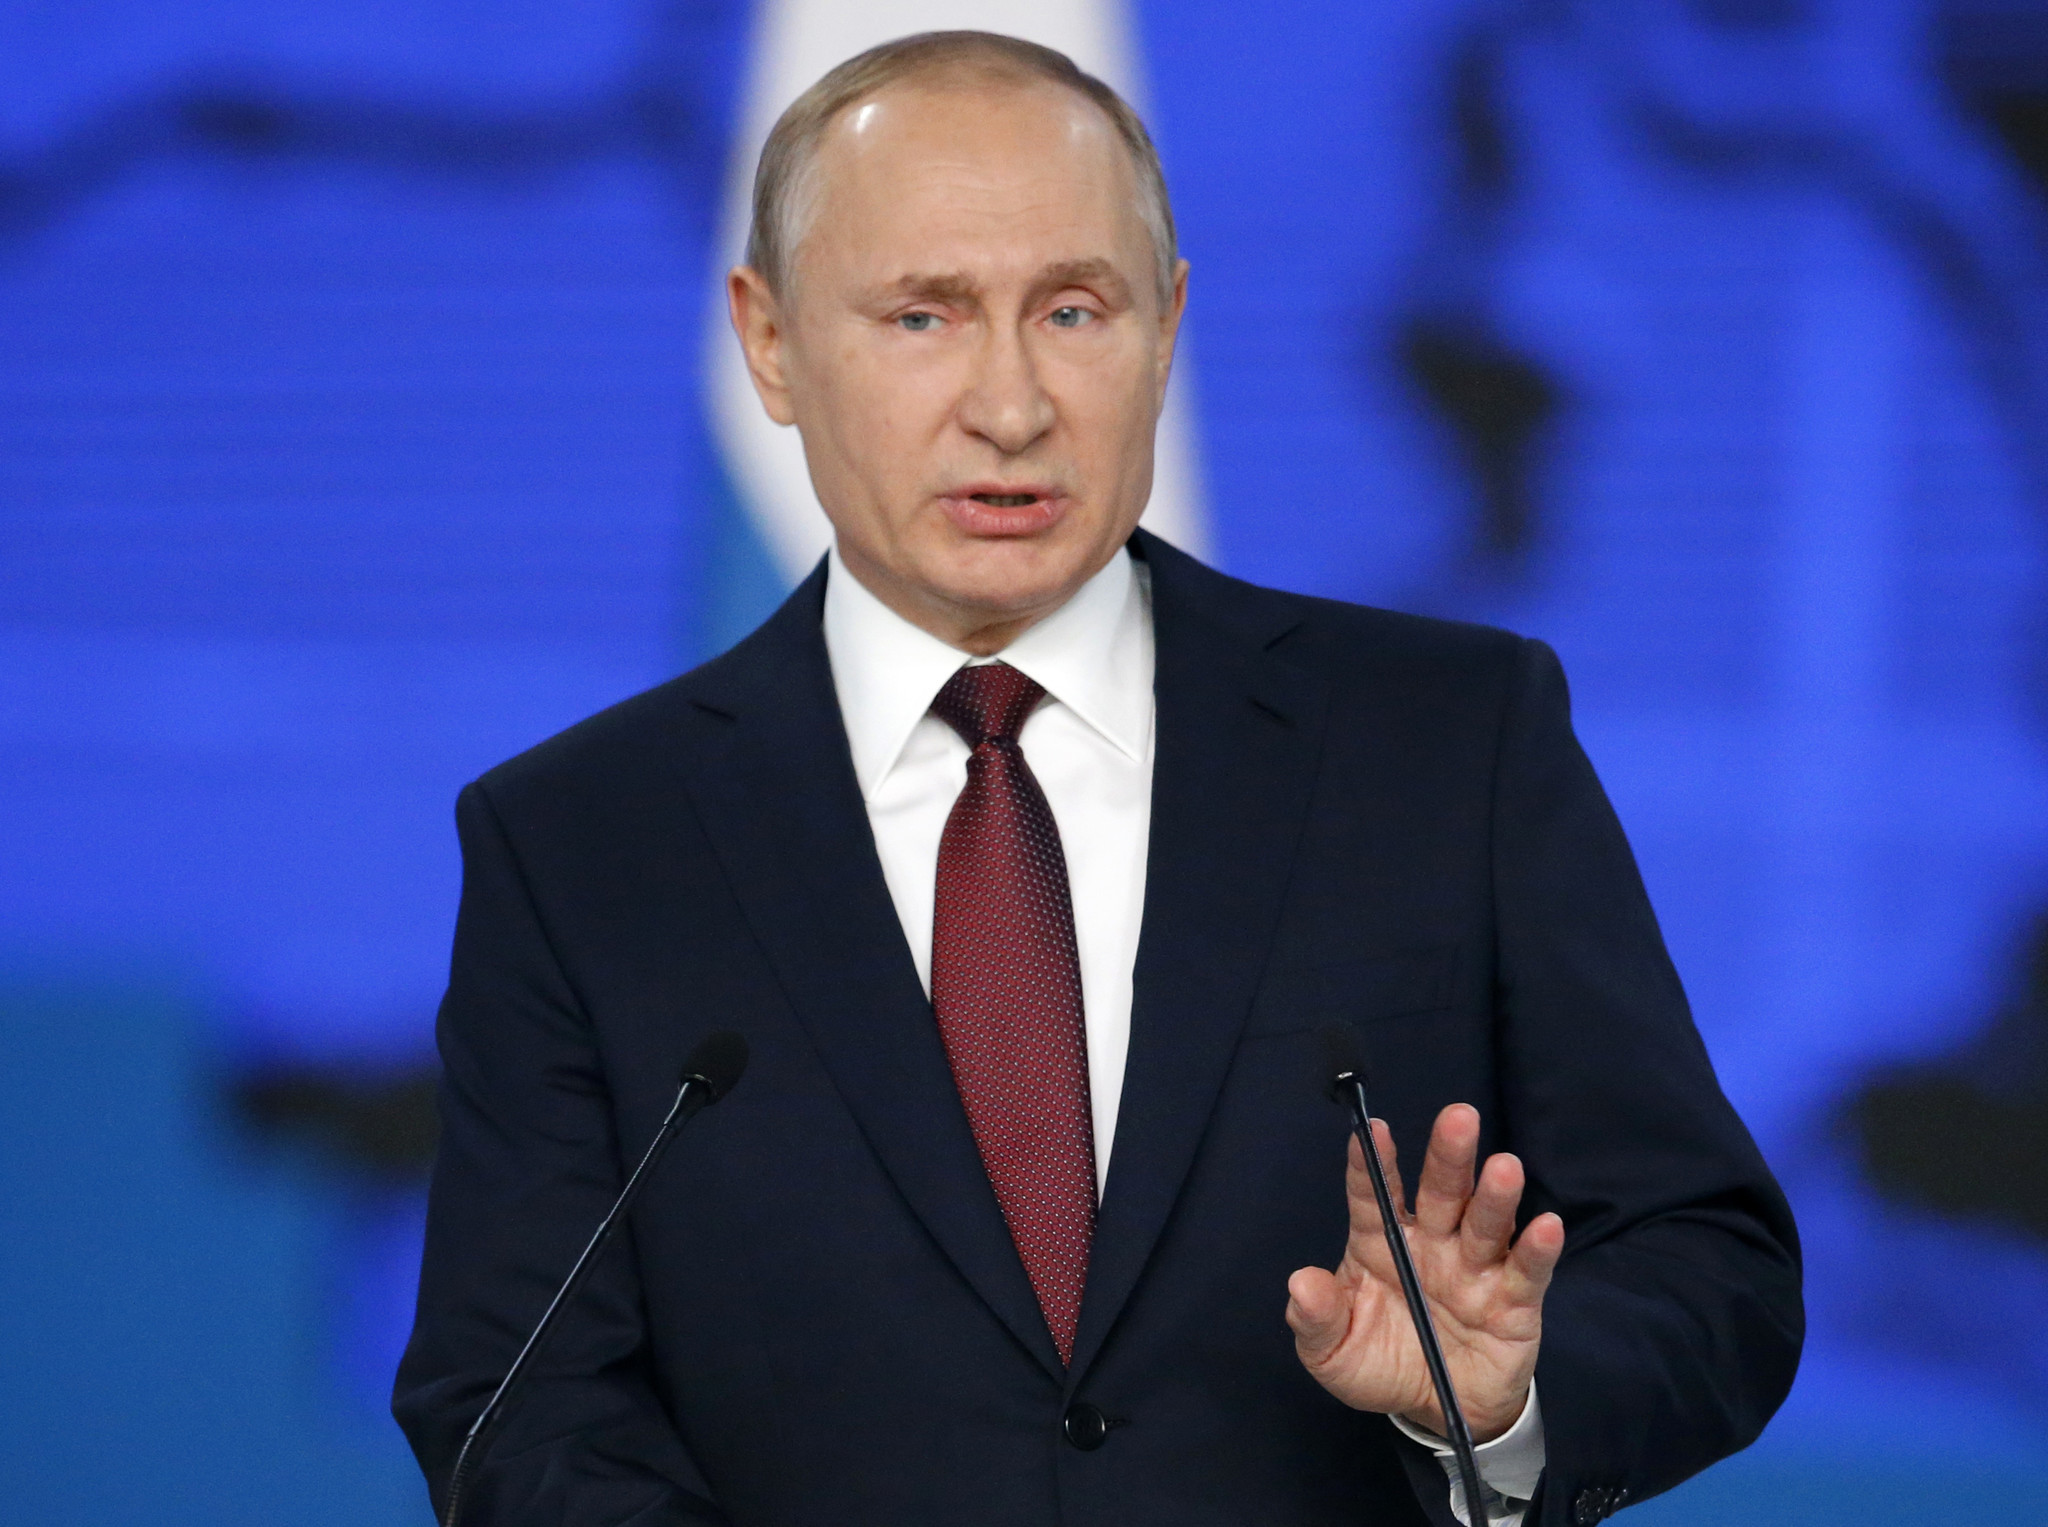 Putin warns new weapons will target U.S. if missiles are deployed in Europe